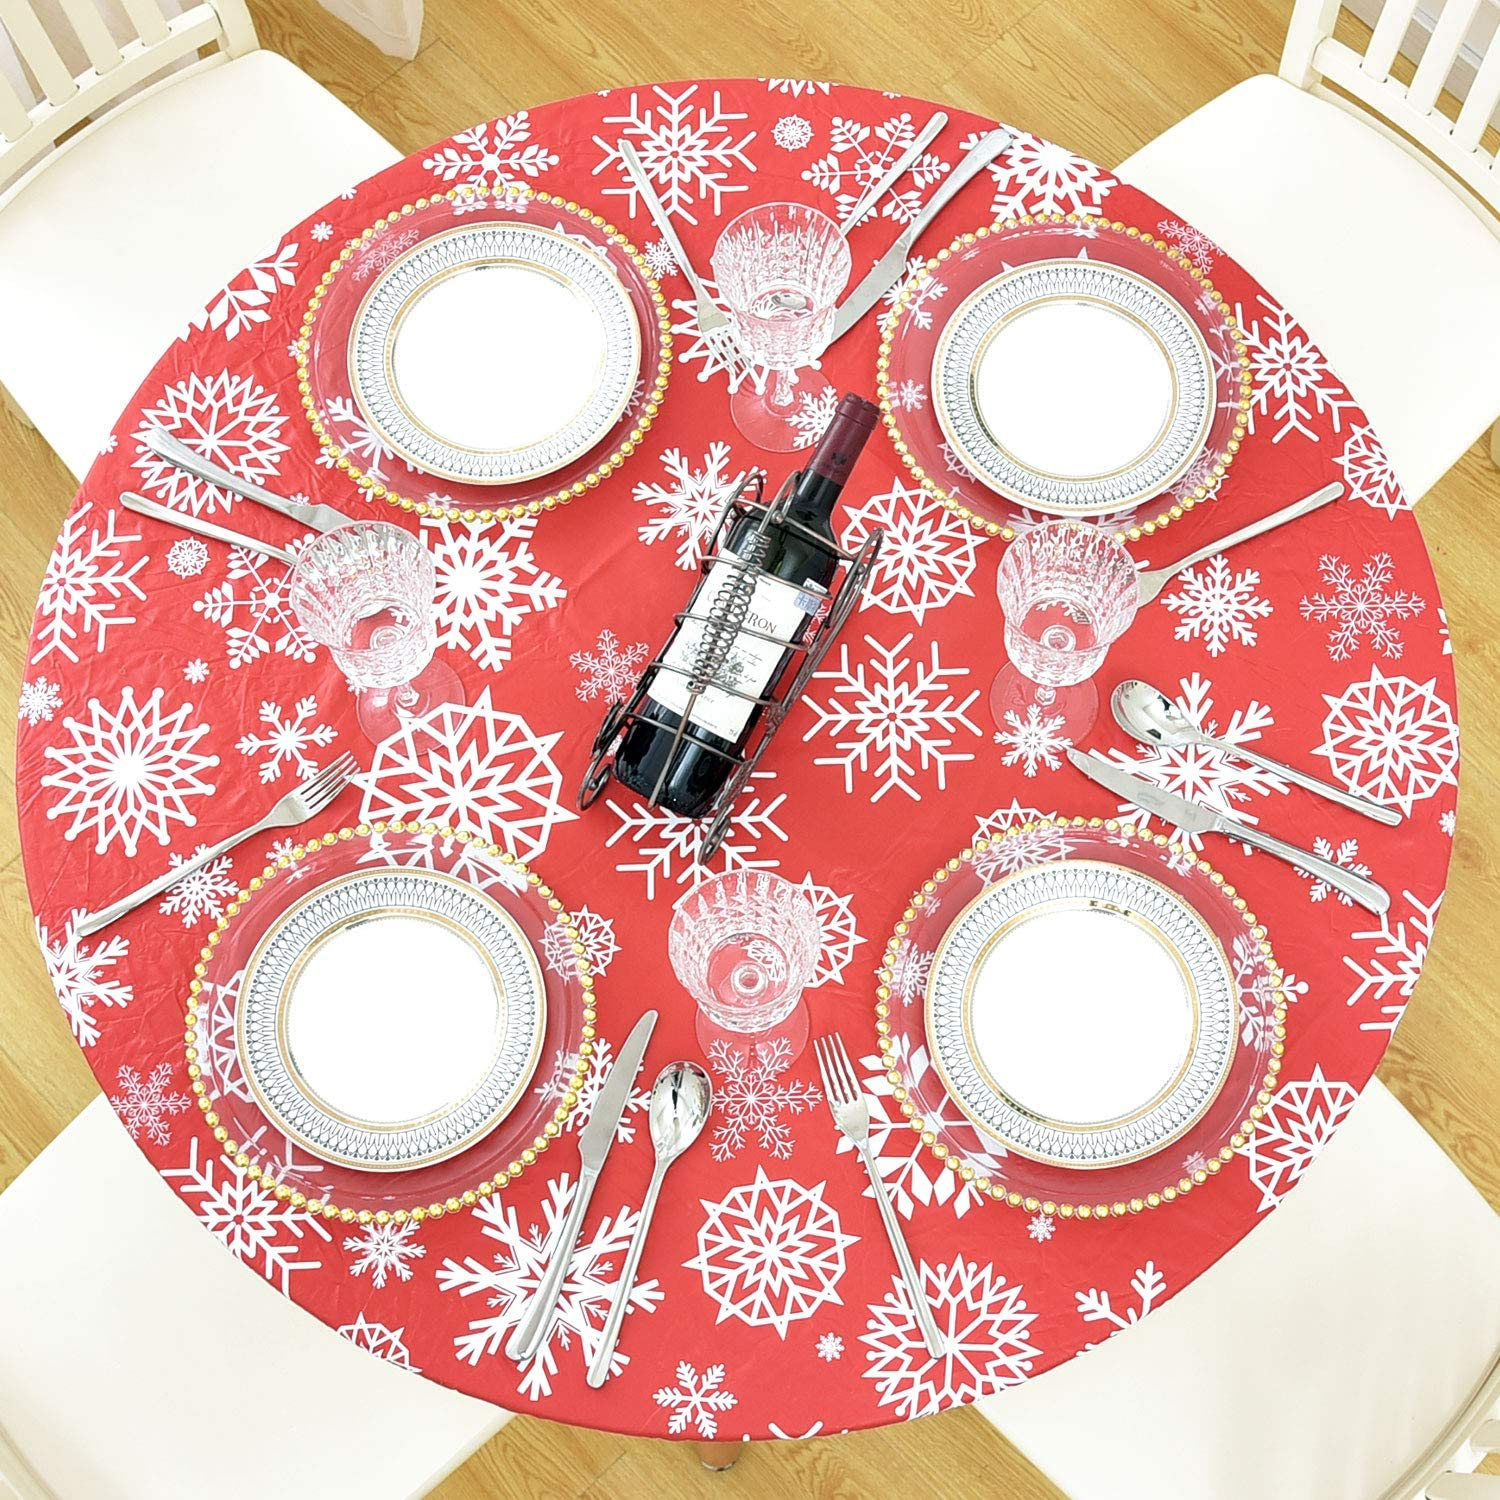 "Lifesmells Round Fitted Vinyl Tablecloth for Indoor Outdoor Patio Tables, Oil&Waterproof Wipeable, Flannel Backed&Elastic Edge, Red-White Snowflake for Table of 36-44"" Diameter"